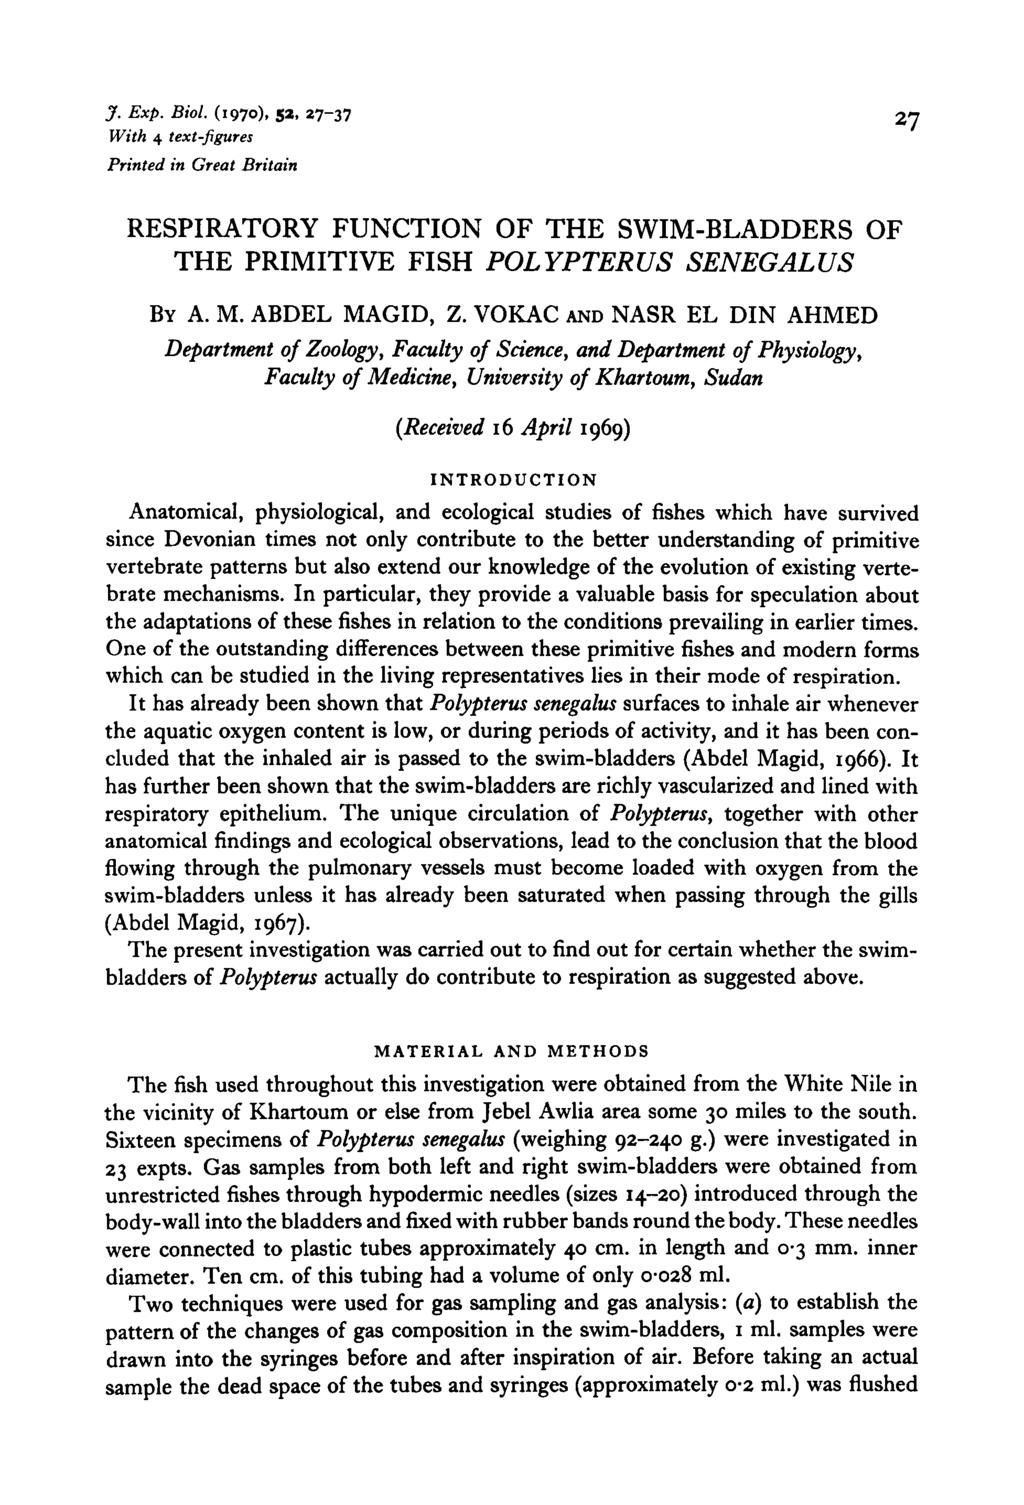 J. Exp. Biol. (1970), 5a, 27-37 27 With 4 text-figures Printed in Great Britain ESPIATOY FUNCTION OF THE SWIM-BADDES OF THE PIMITIVE FISH POYPTEUS SENEGAUS BY A. M. ABDE MAGID, Z.